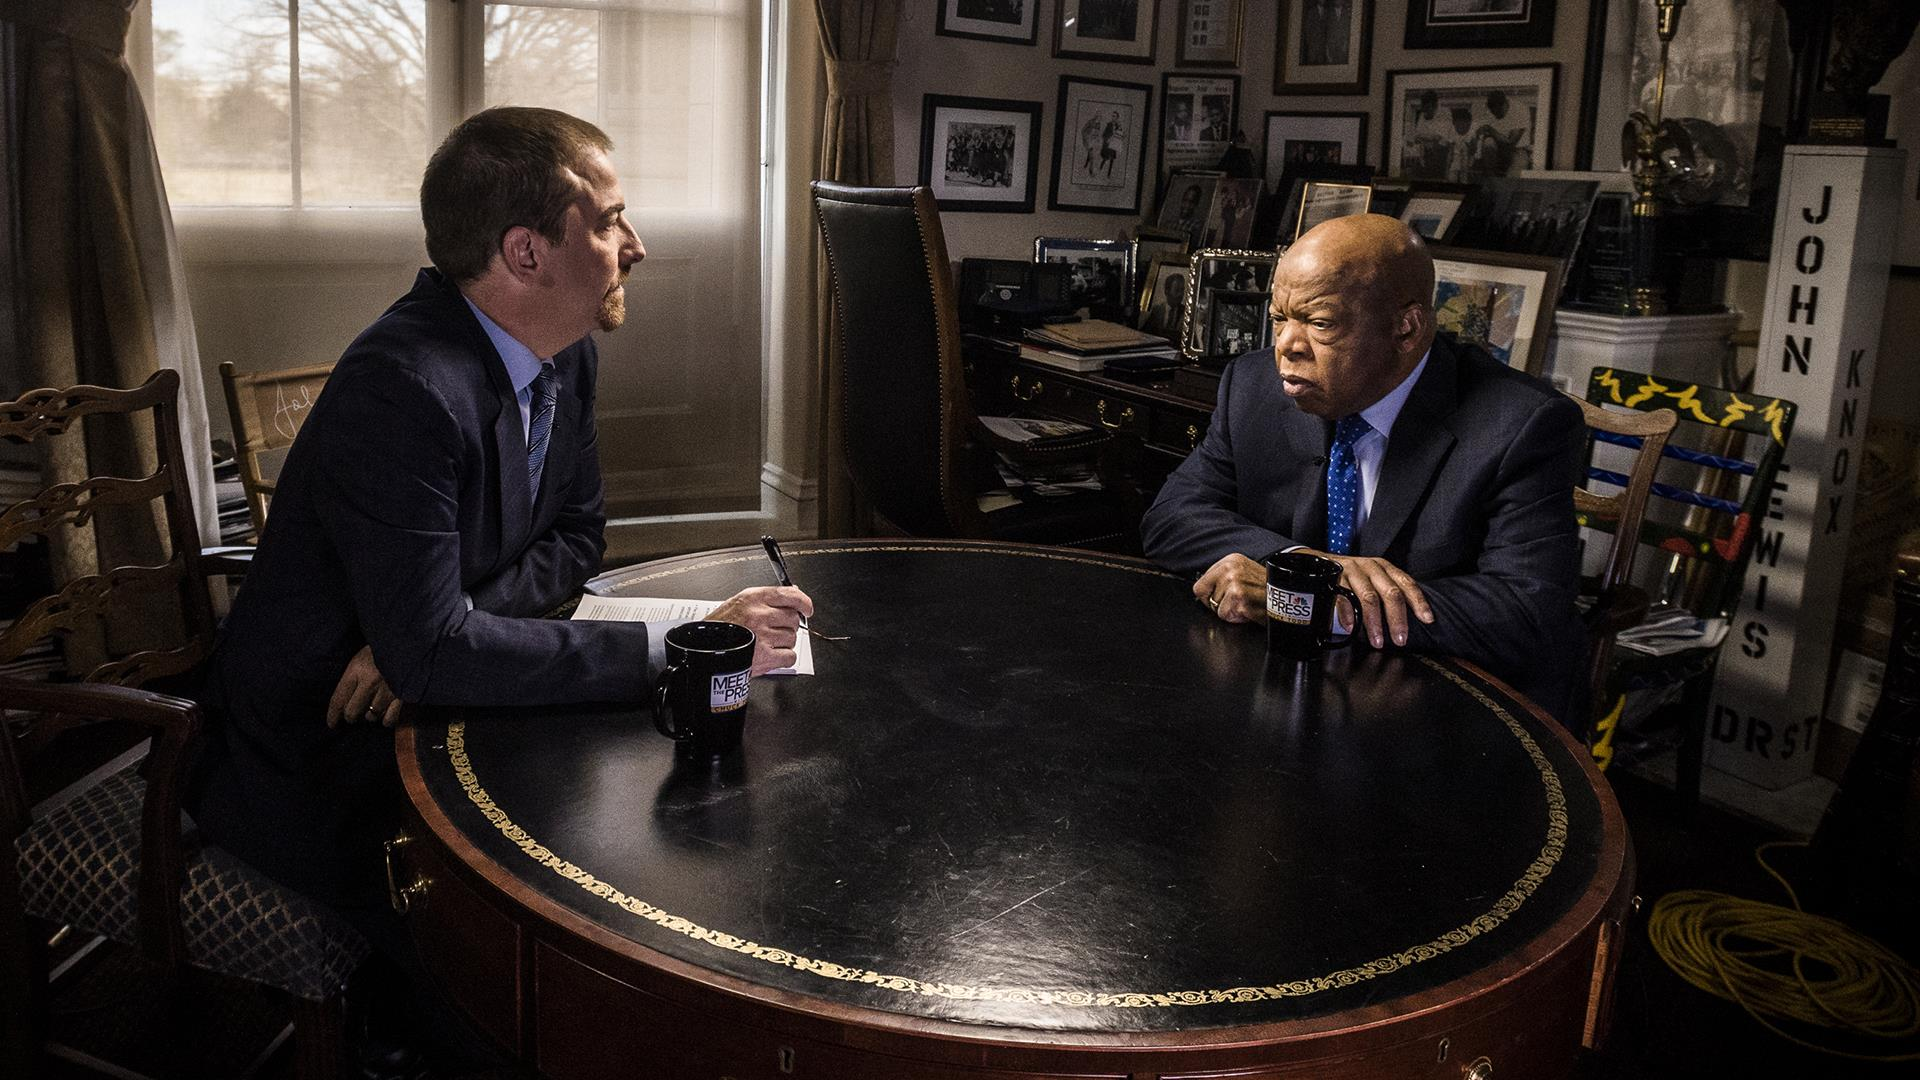 Full John Lewis Interview: 'We must not be silent'